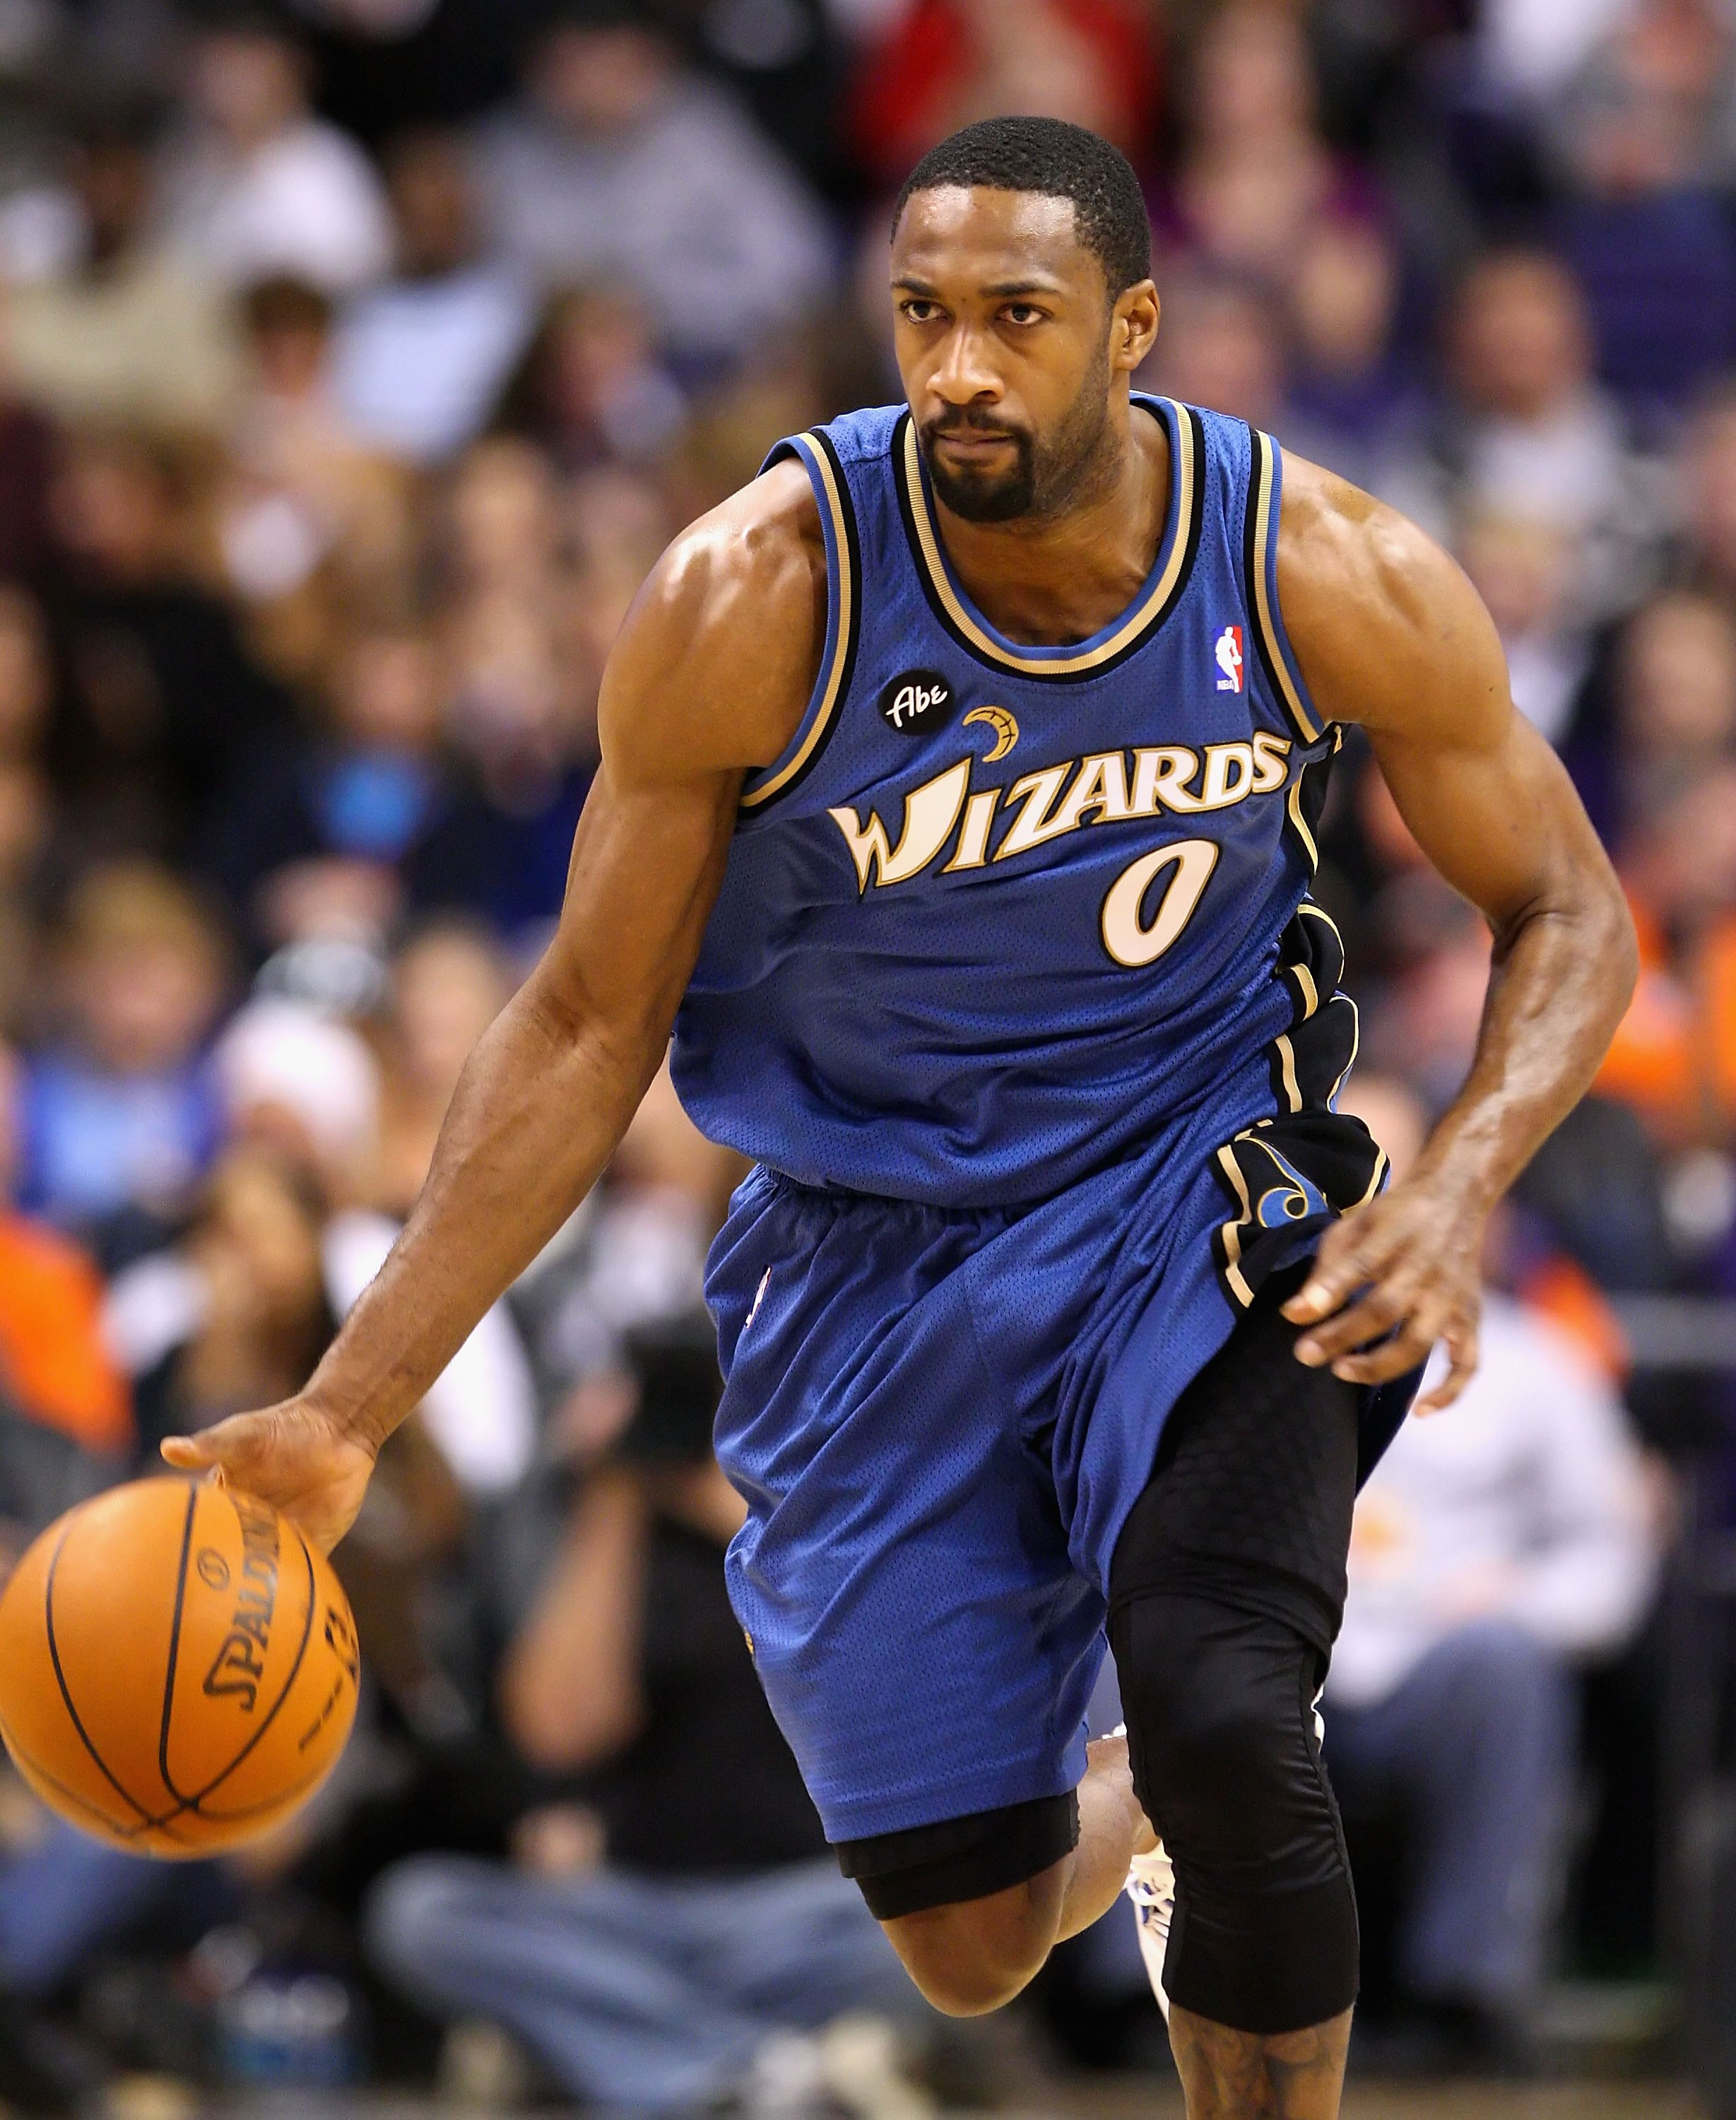 PHOENIX - DECEMBER 19:  Gilbert Arenas #0 of the Washington Wizards hanldles the ball during the NBA game against the Phoenix Suns at US Airways Center on December 19, 2009 in Phoenix, Arizona. The Suns defeated the Wizards 121-95. NOTE TO USER: User expr